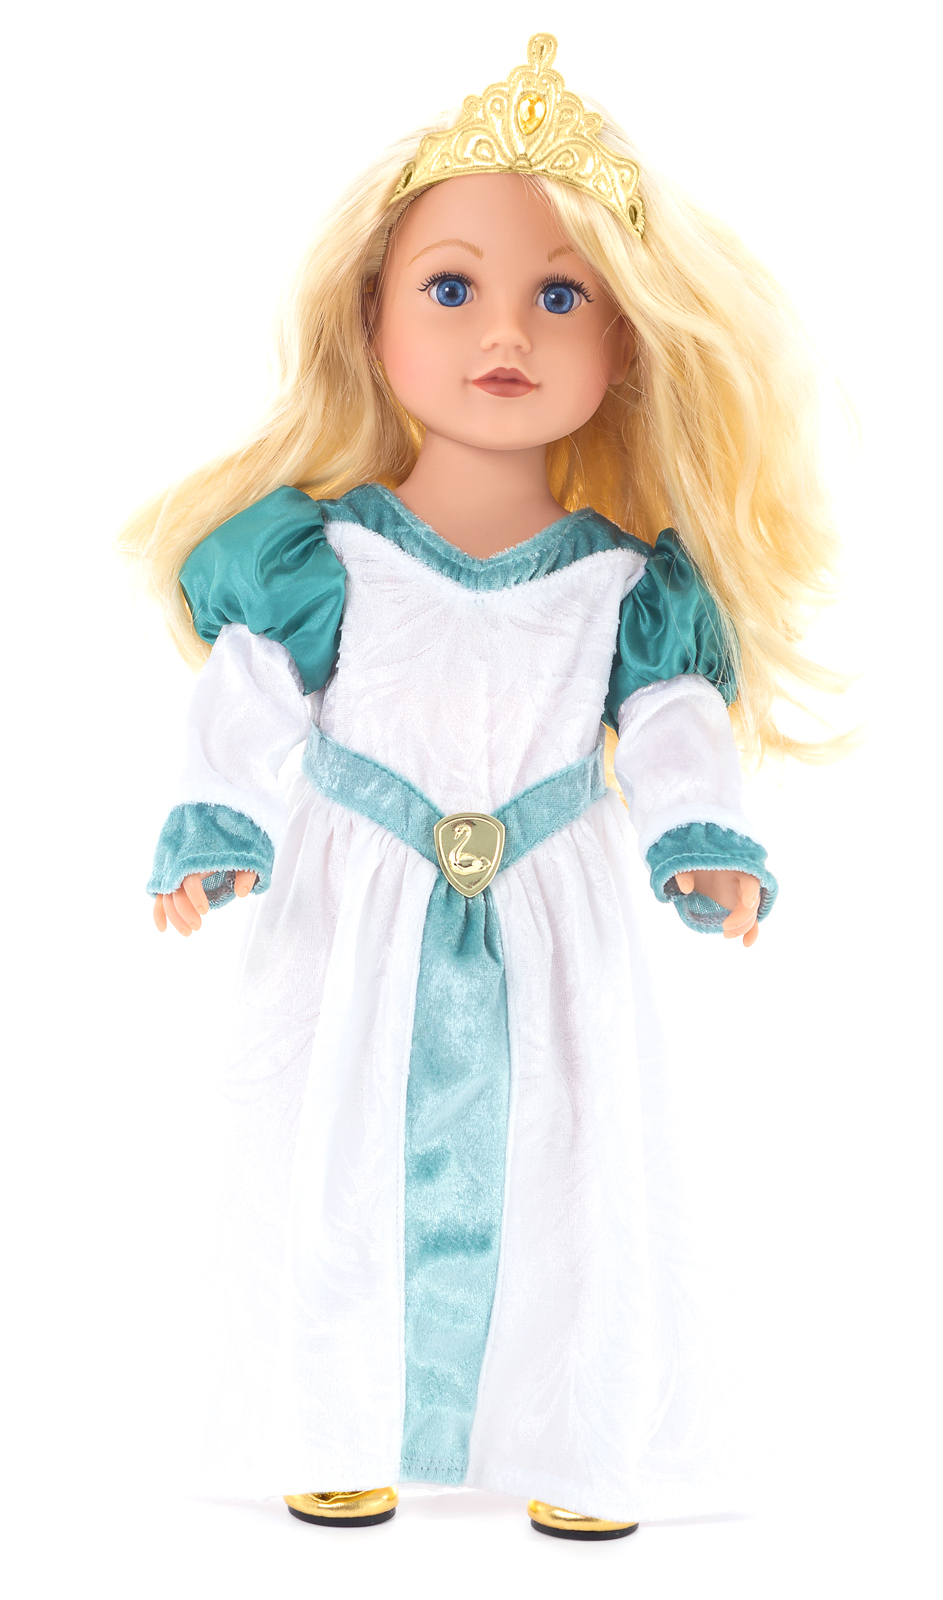 Swan Princess Odette Doll Dress. Zoom. Doll Tiara and Shoes not included.  sc 1 st  Little Dress Up Shop & Swan Princess Doll Dress